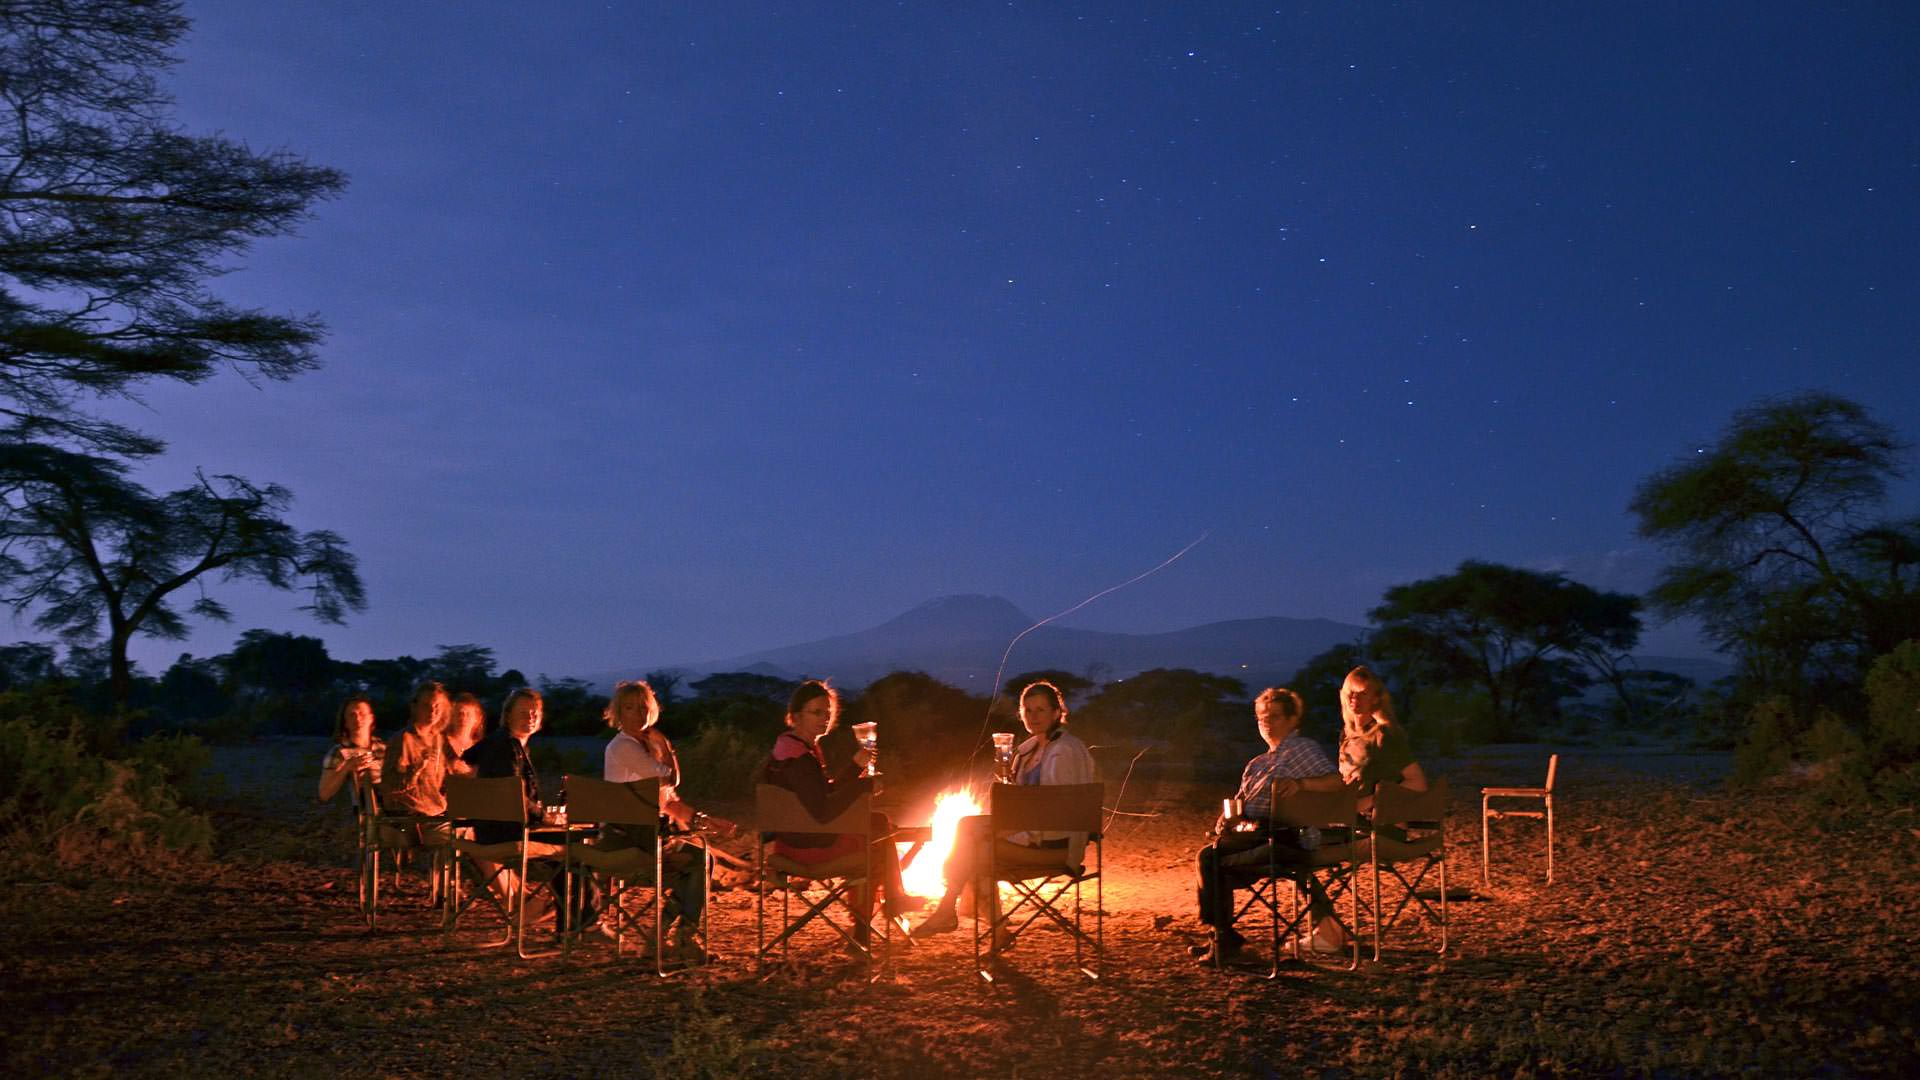 Sunset and Kilimanjaro by the fireside